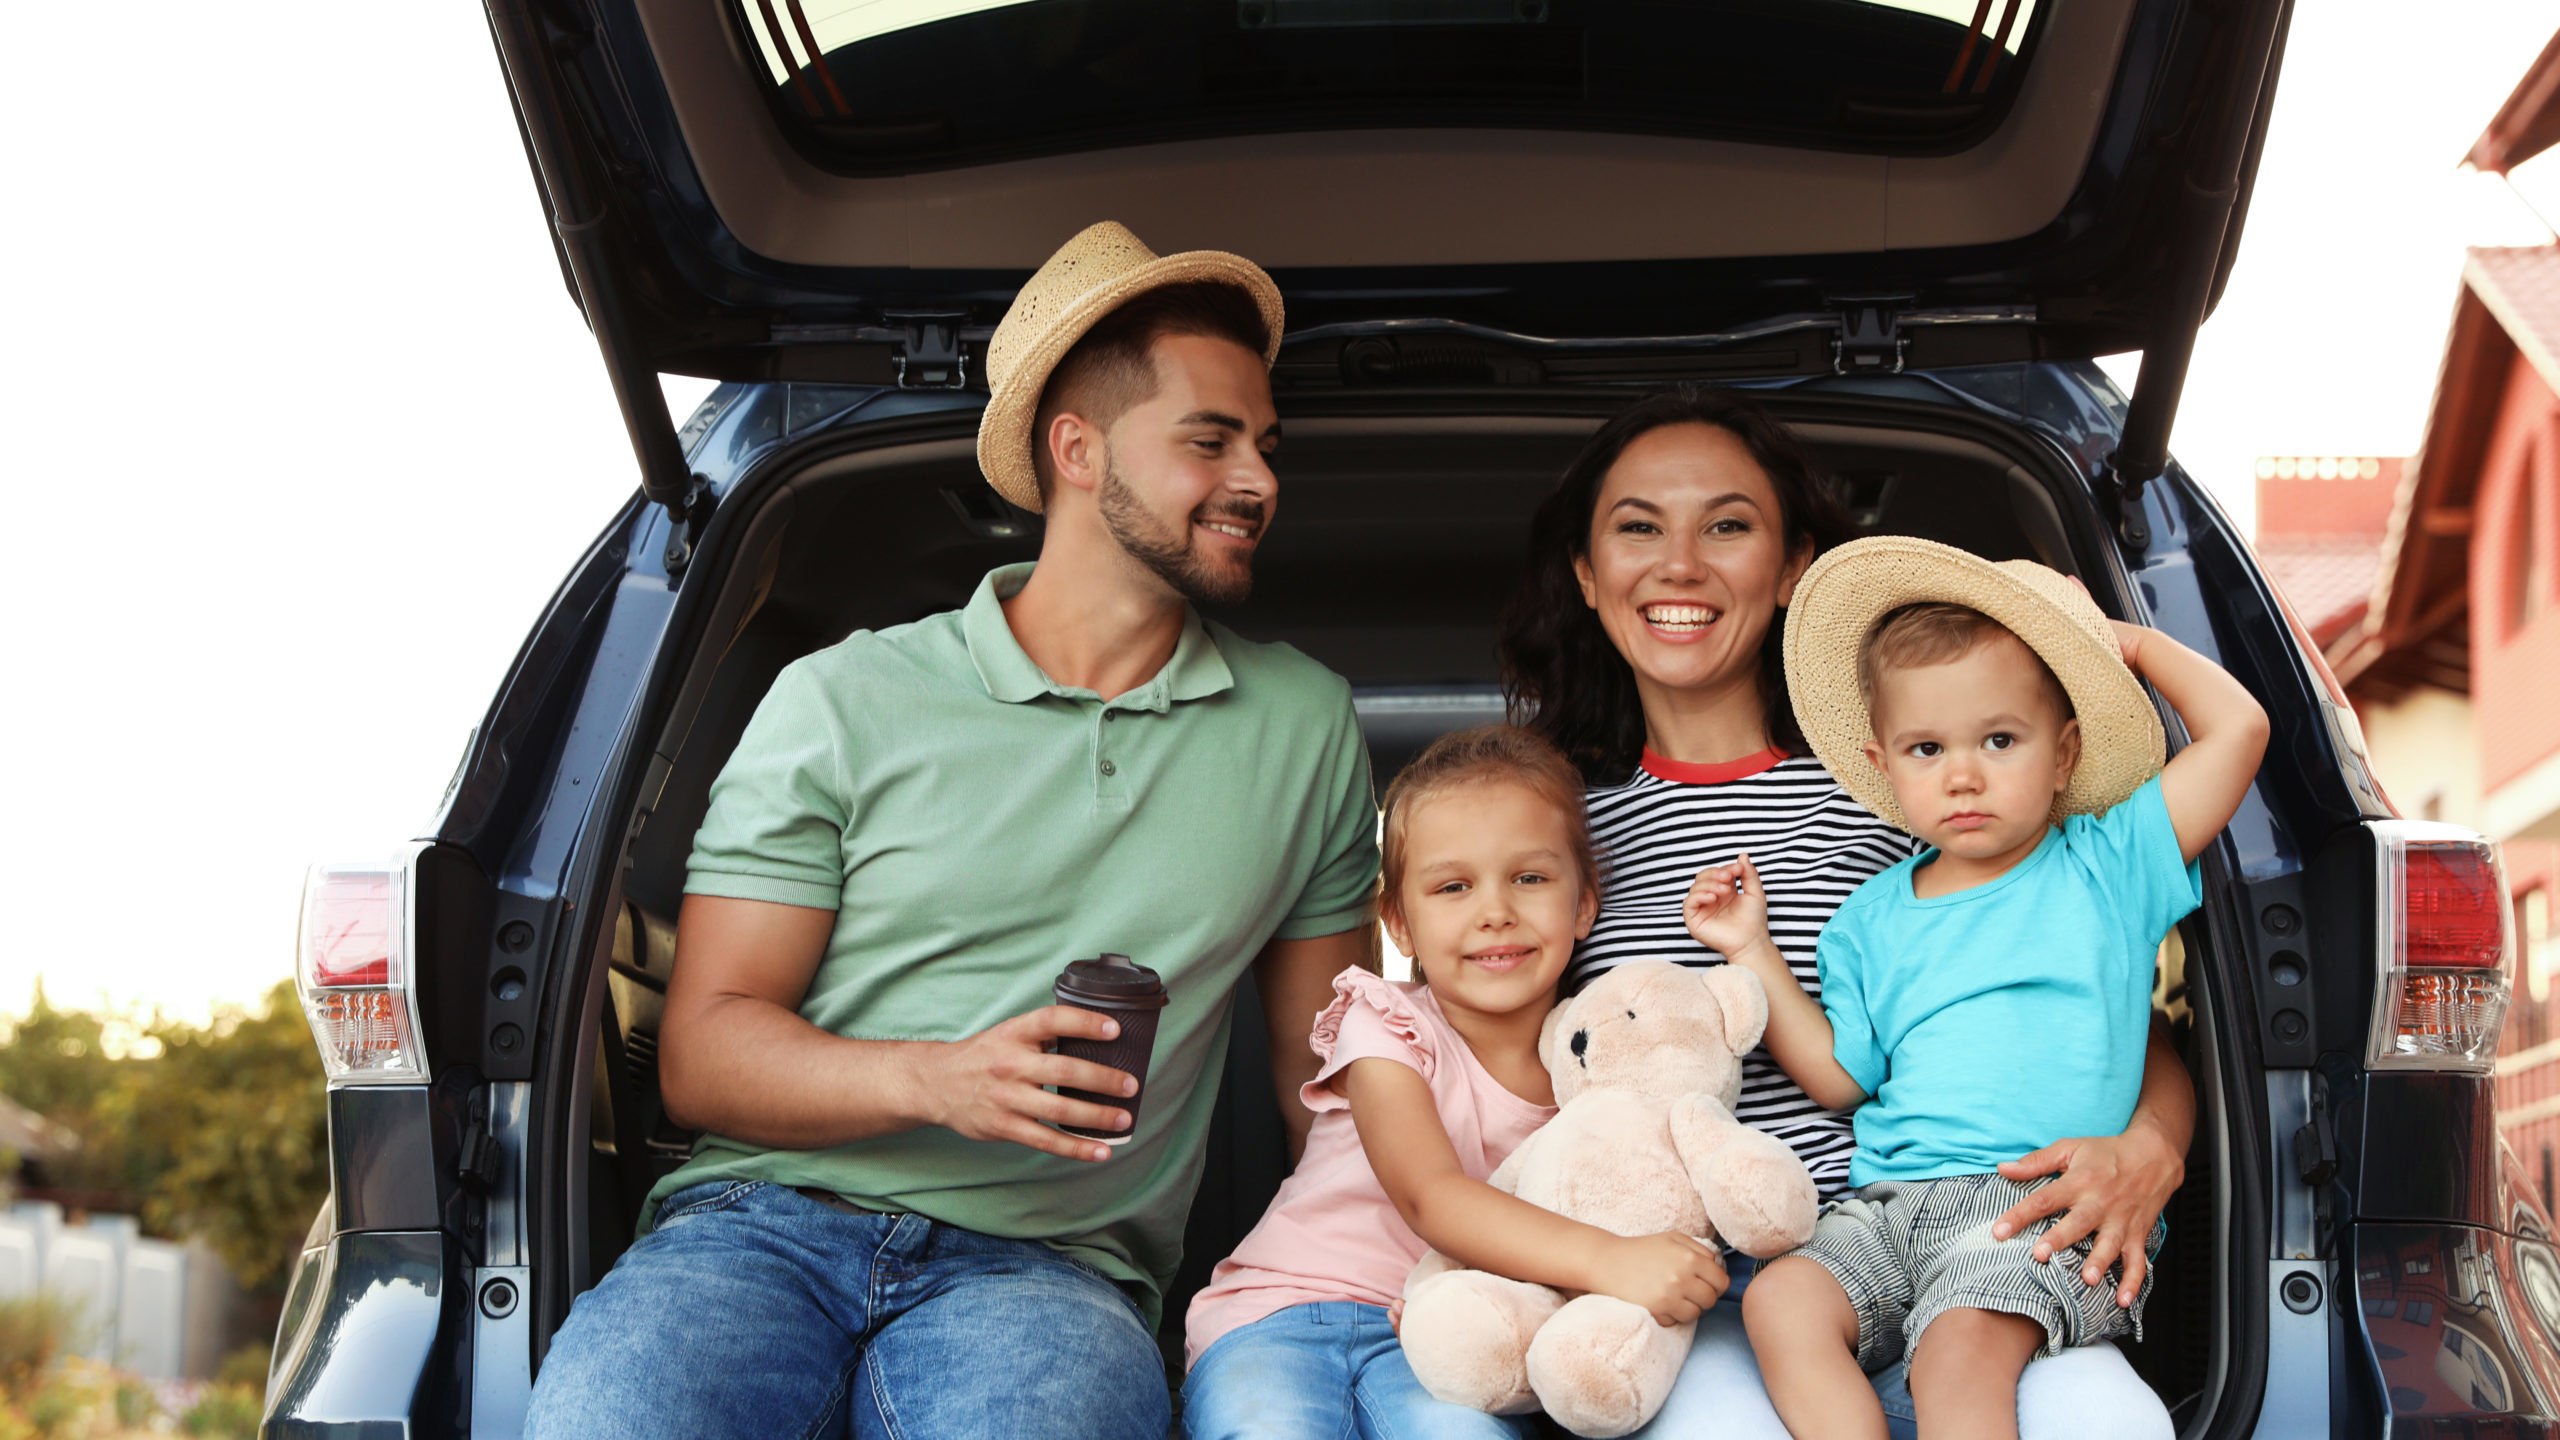 Family of four sitting in the trunk of their car with suitcases nearby